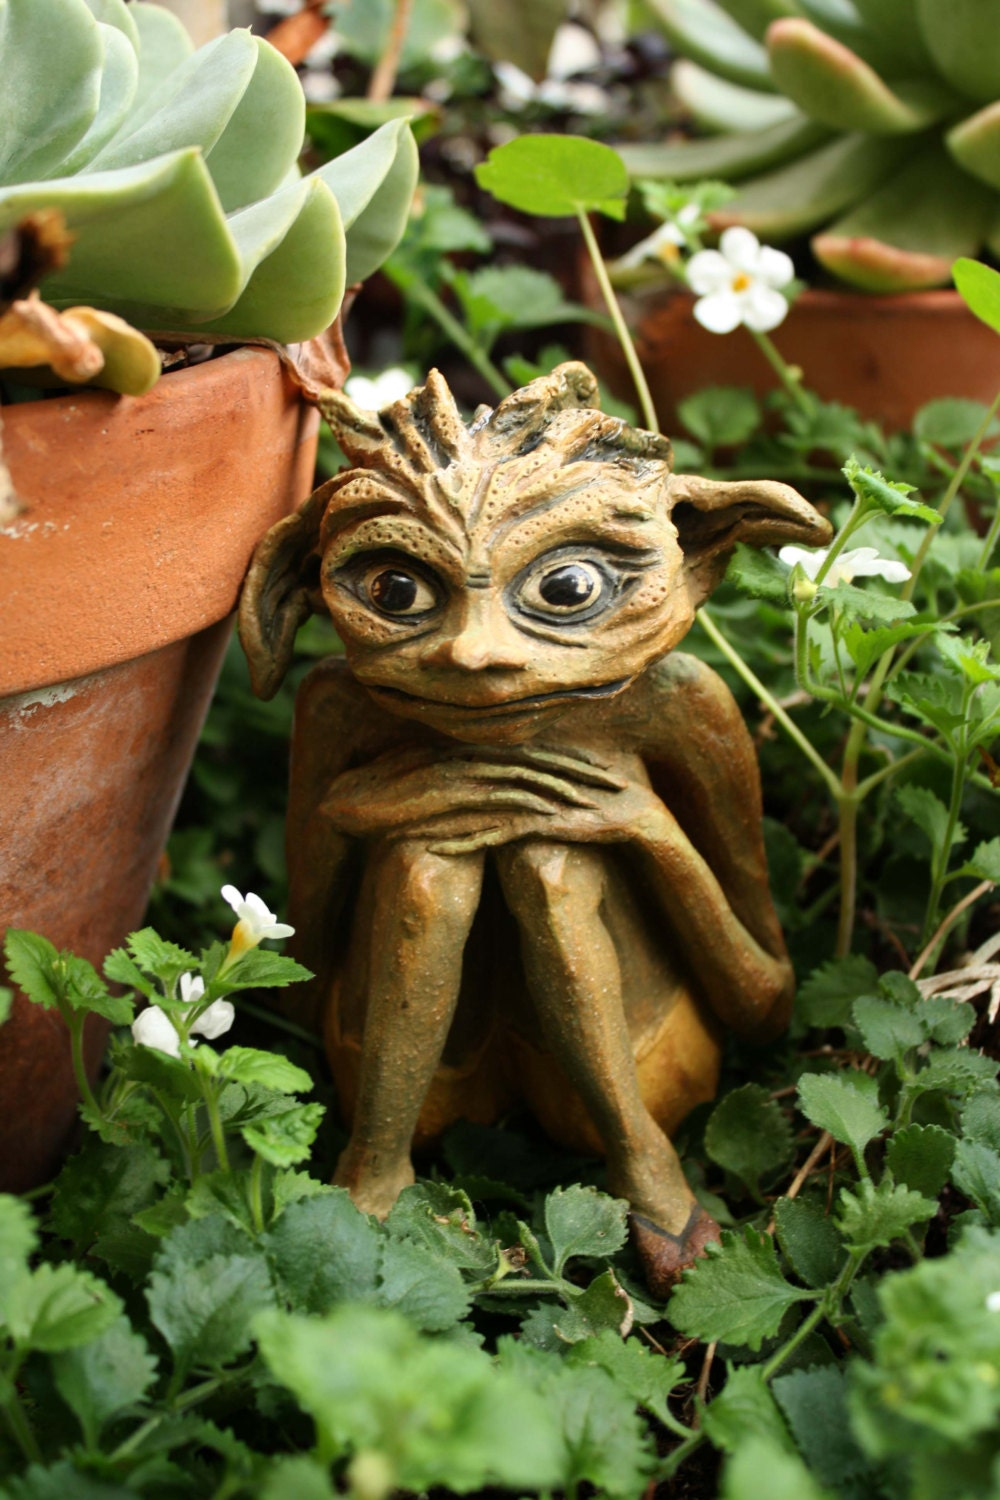 Nervous Nelly Garden Goblin Original Sculpture. Small Garden